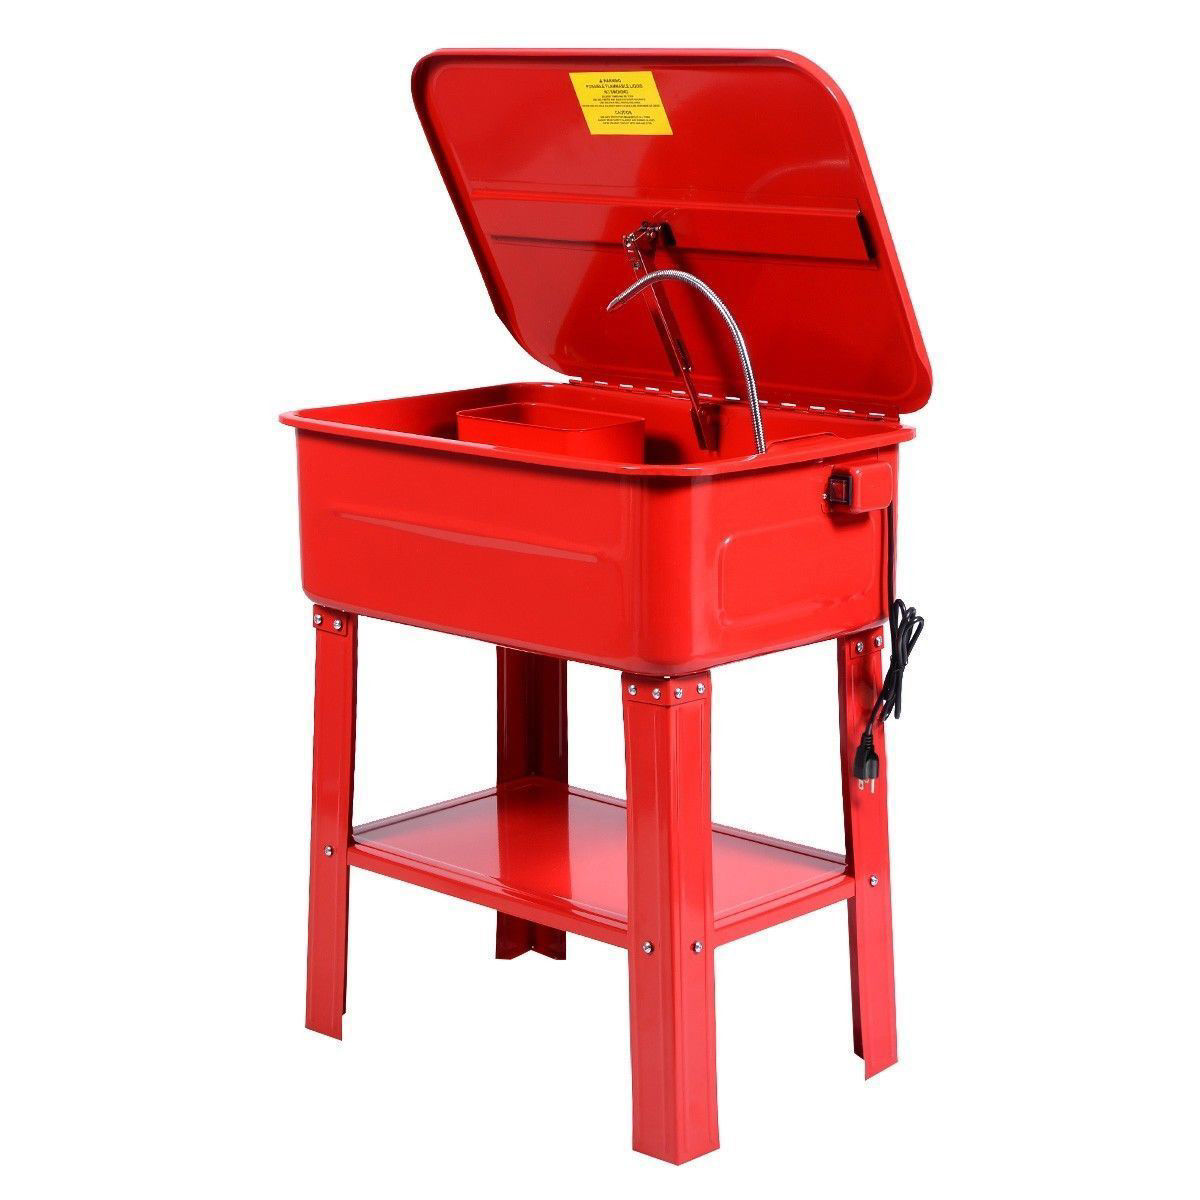 Picture of 20 Gallon Automotive Parts Washer Cleaner Heavy Duty Electric Solvent Pump